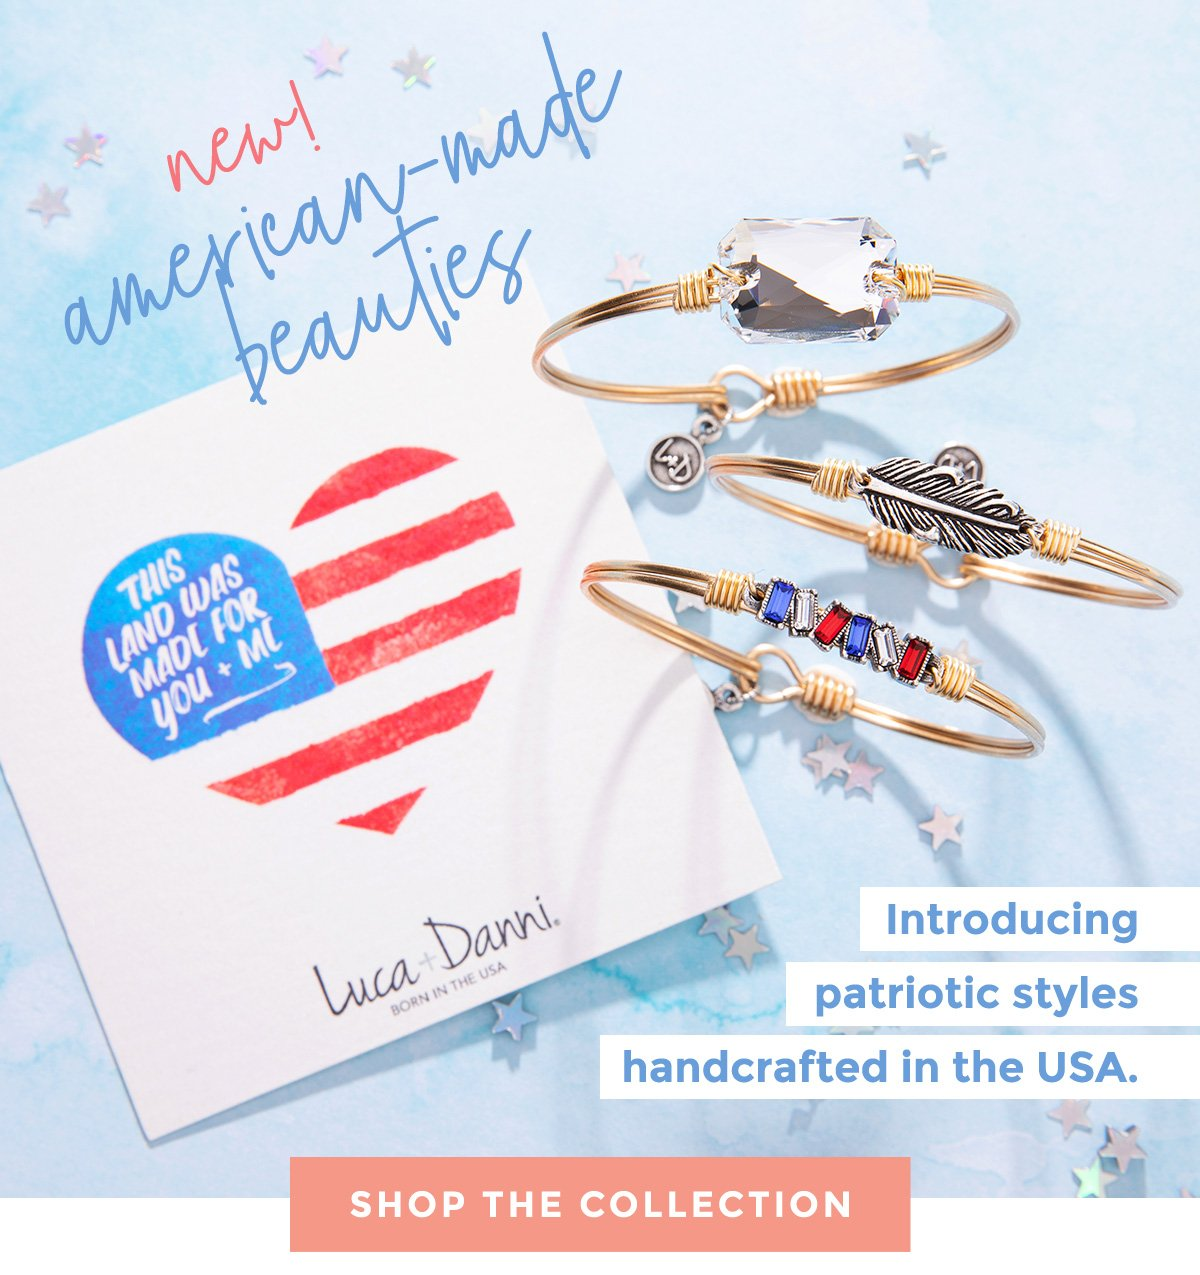 new! american-made beauties | Introducing patriotic styles handcrafted in the USA. | SHOP THE COLLECTION